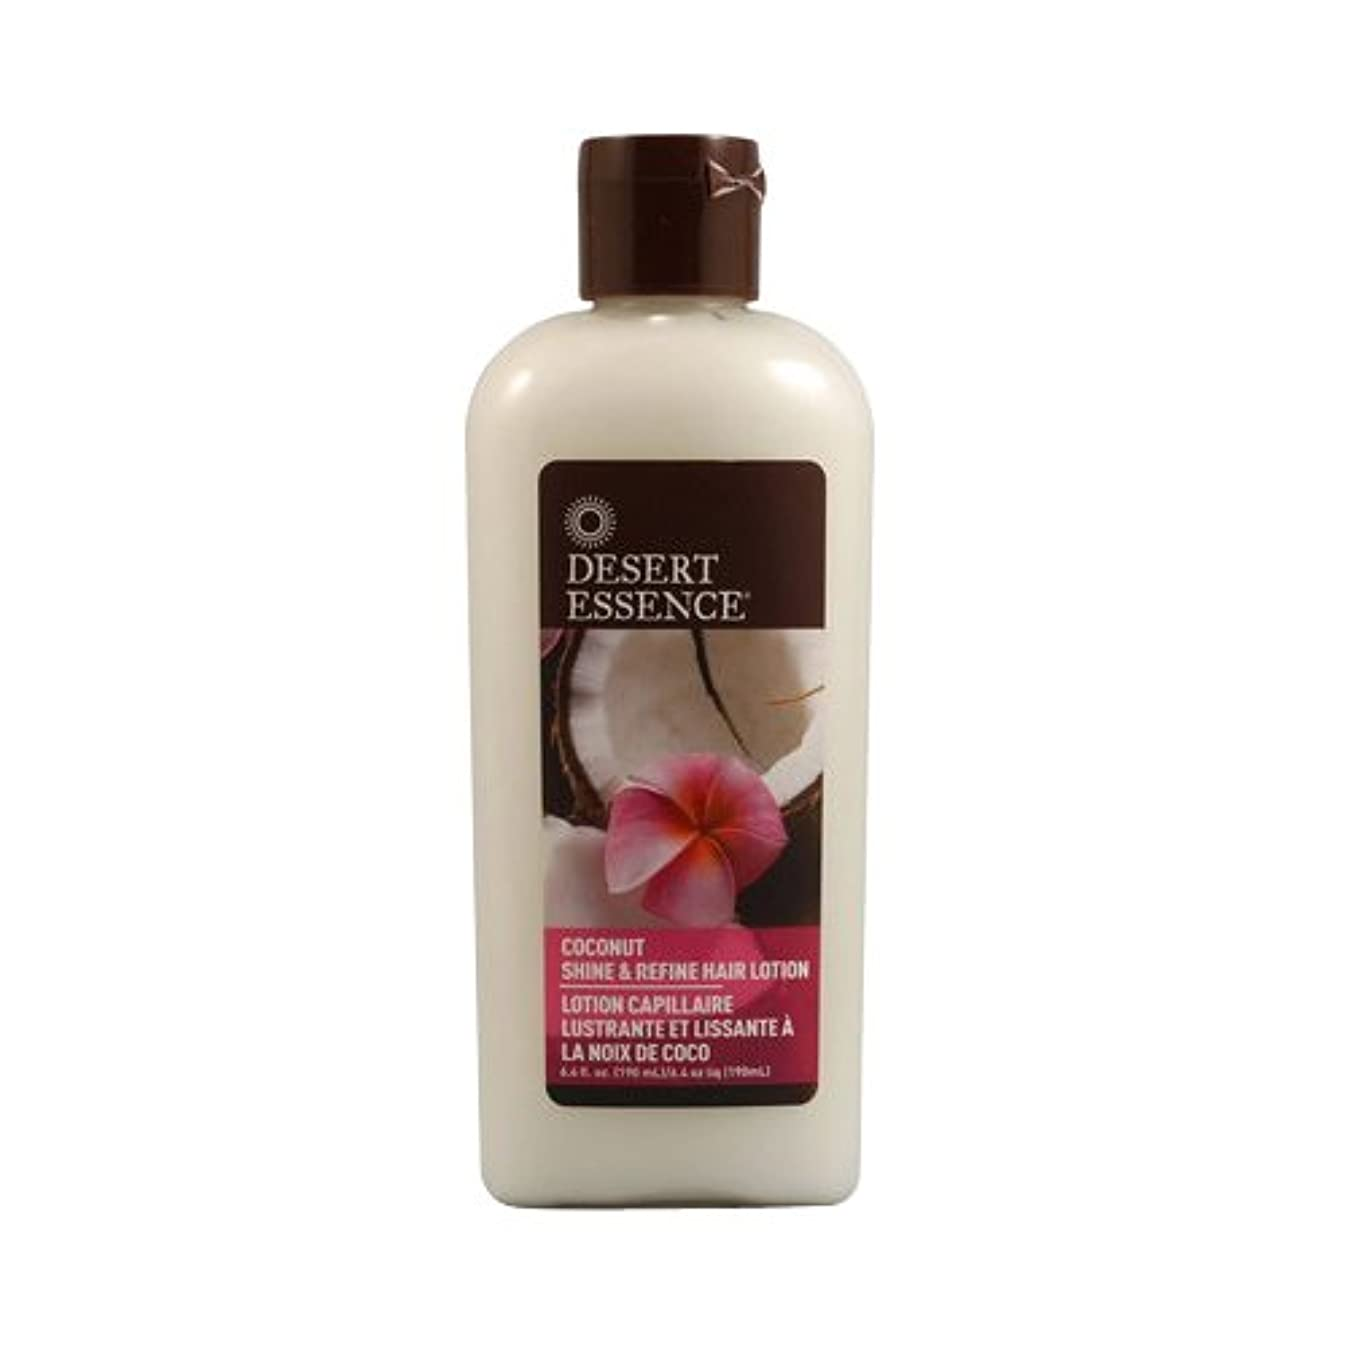 コーナー大きい不毛海外直送品 Desert Essence Coconut Shine & Refine Hair Lotion, 6.4 OZ